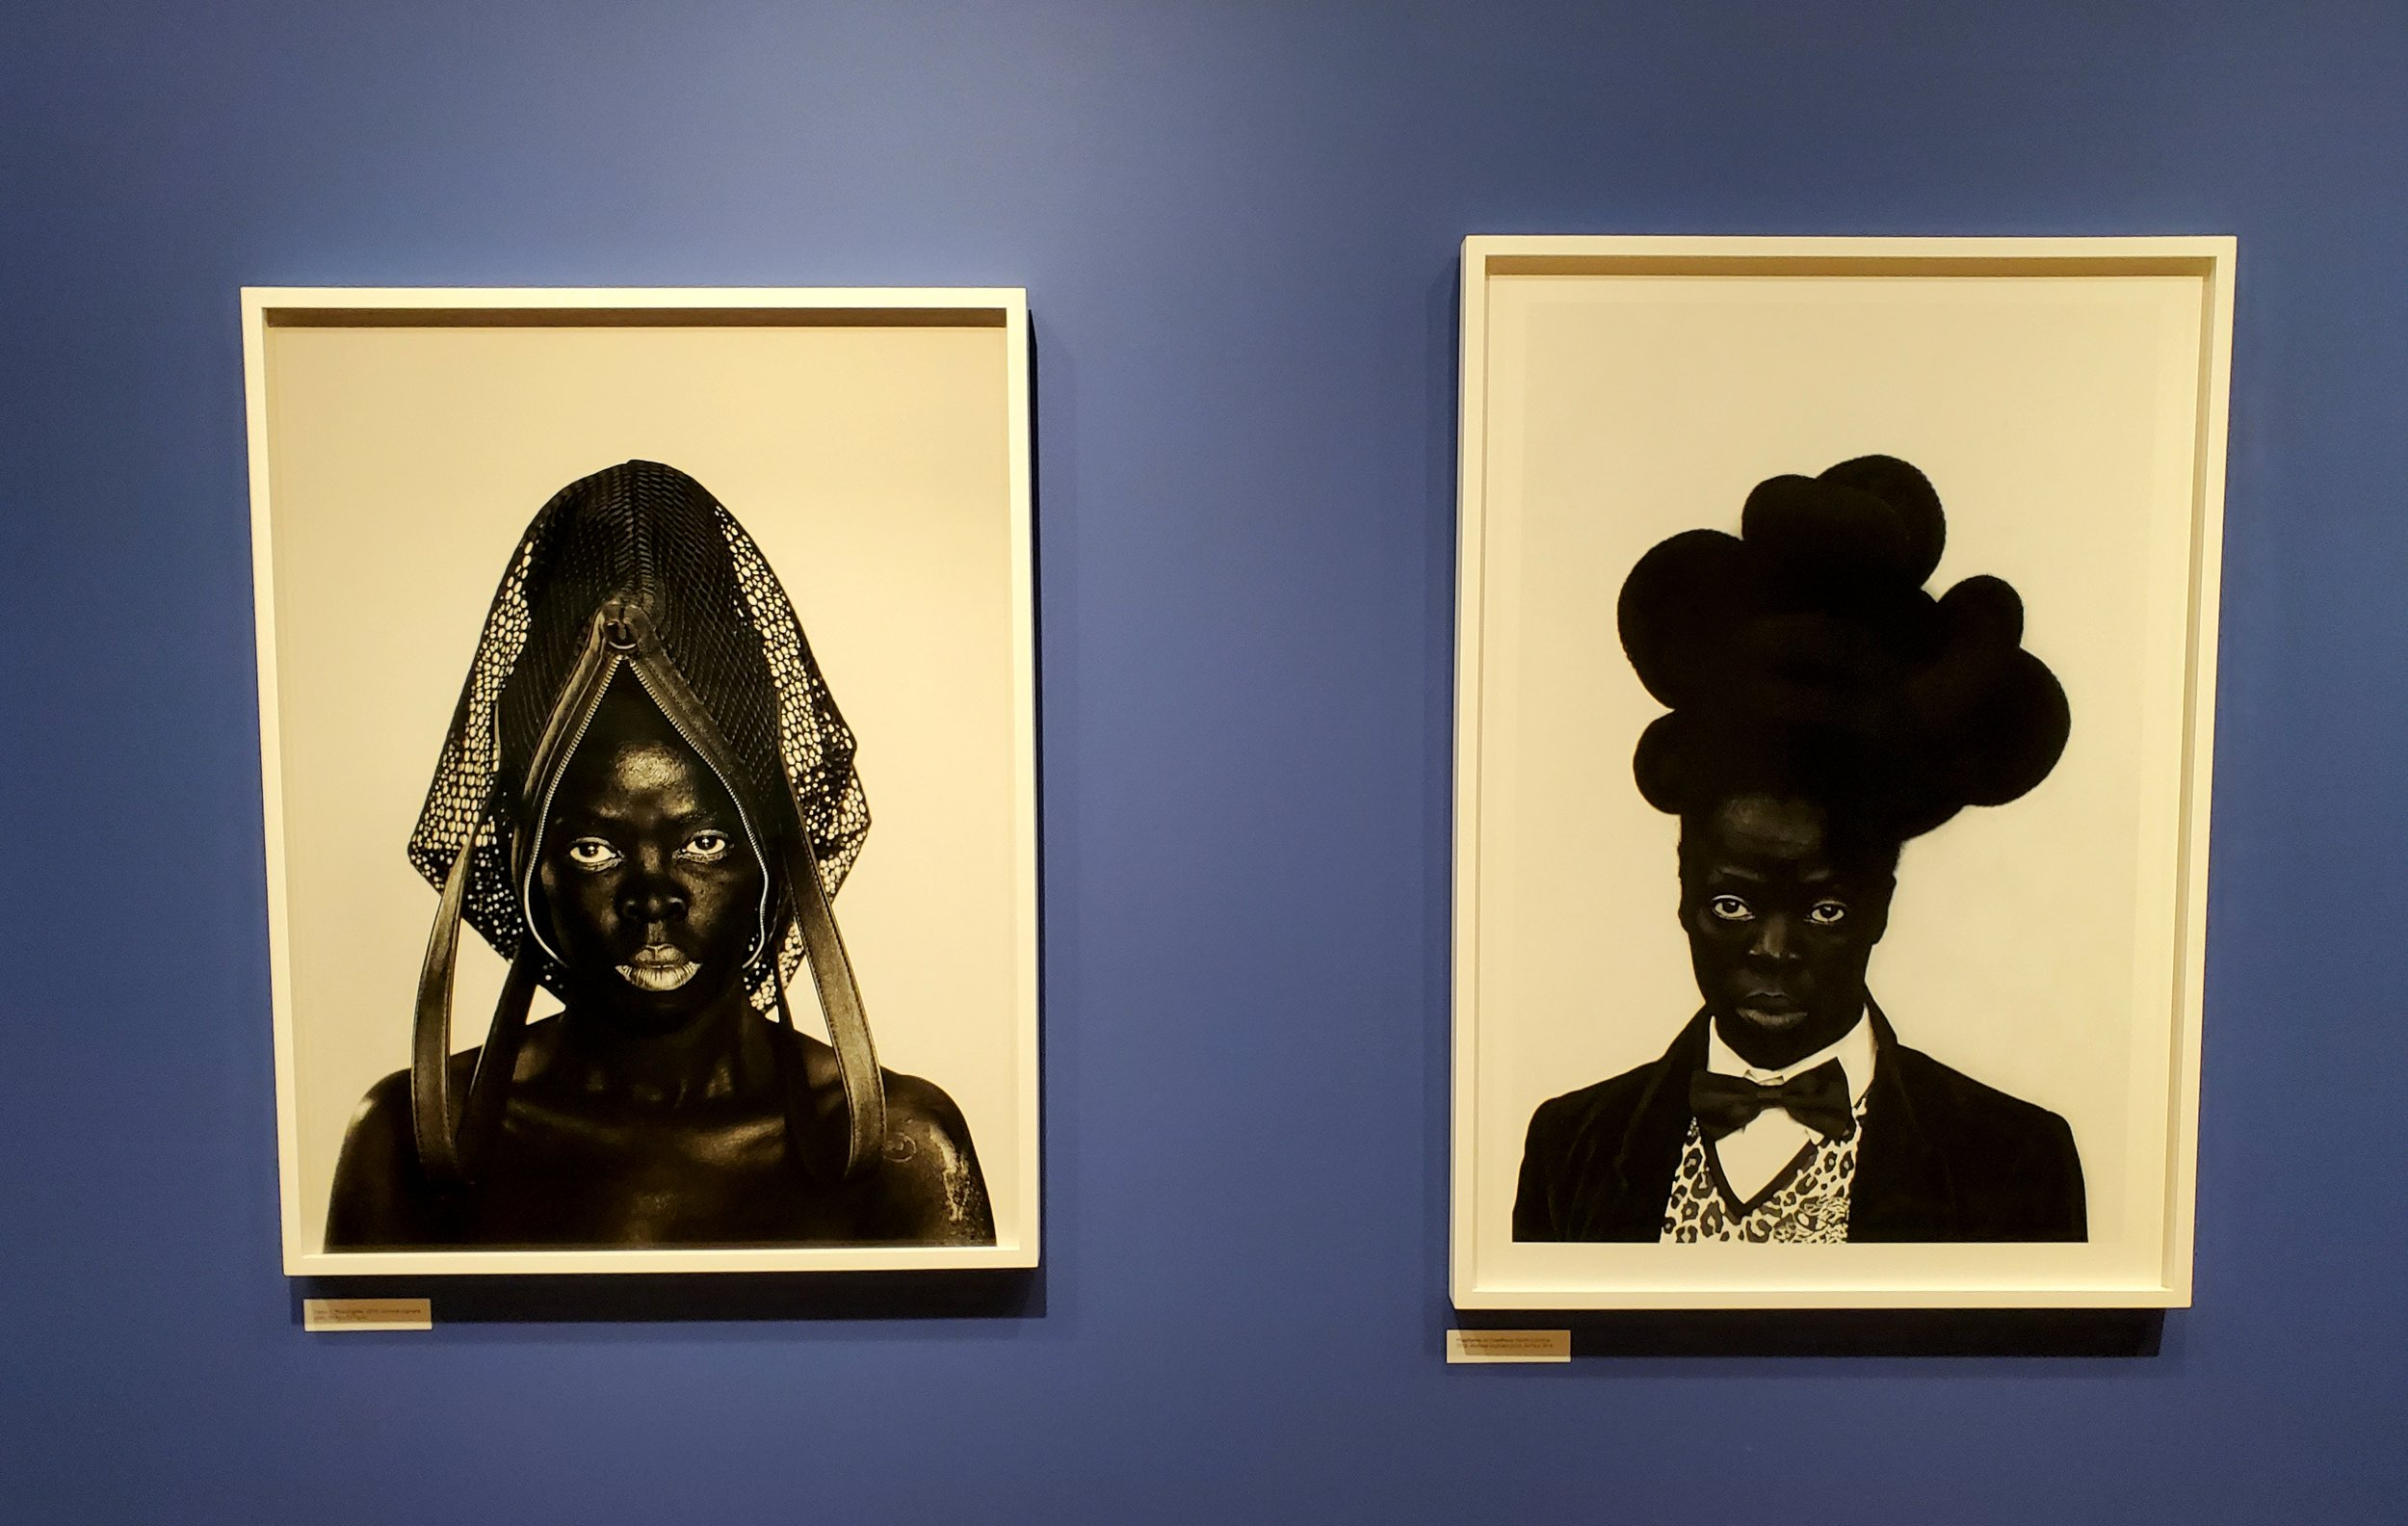 Works by artist Zanele Muholi